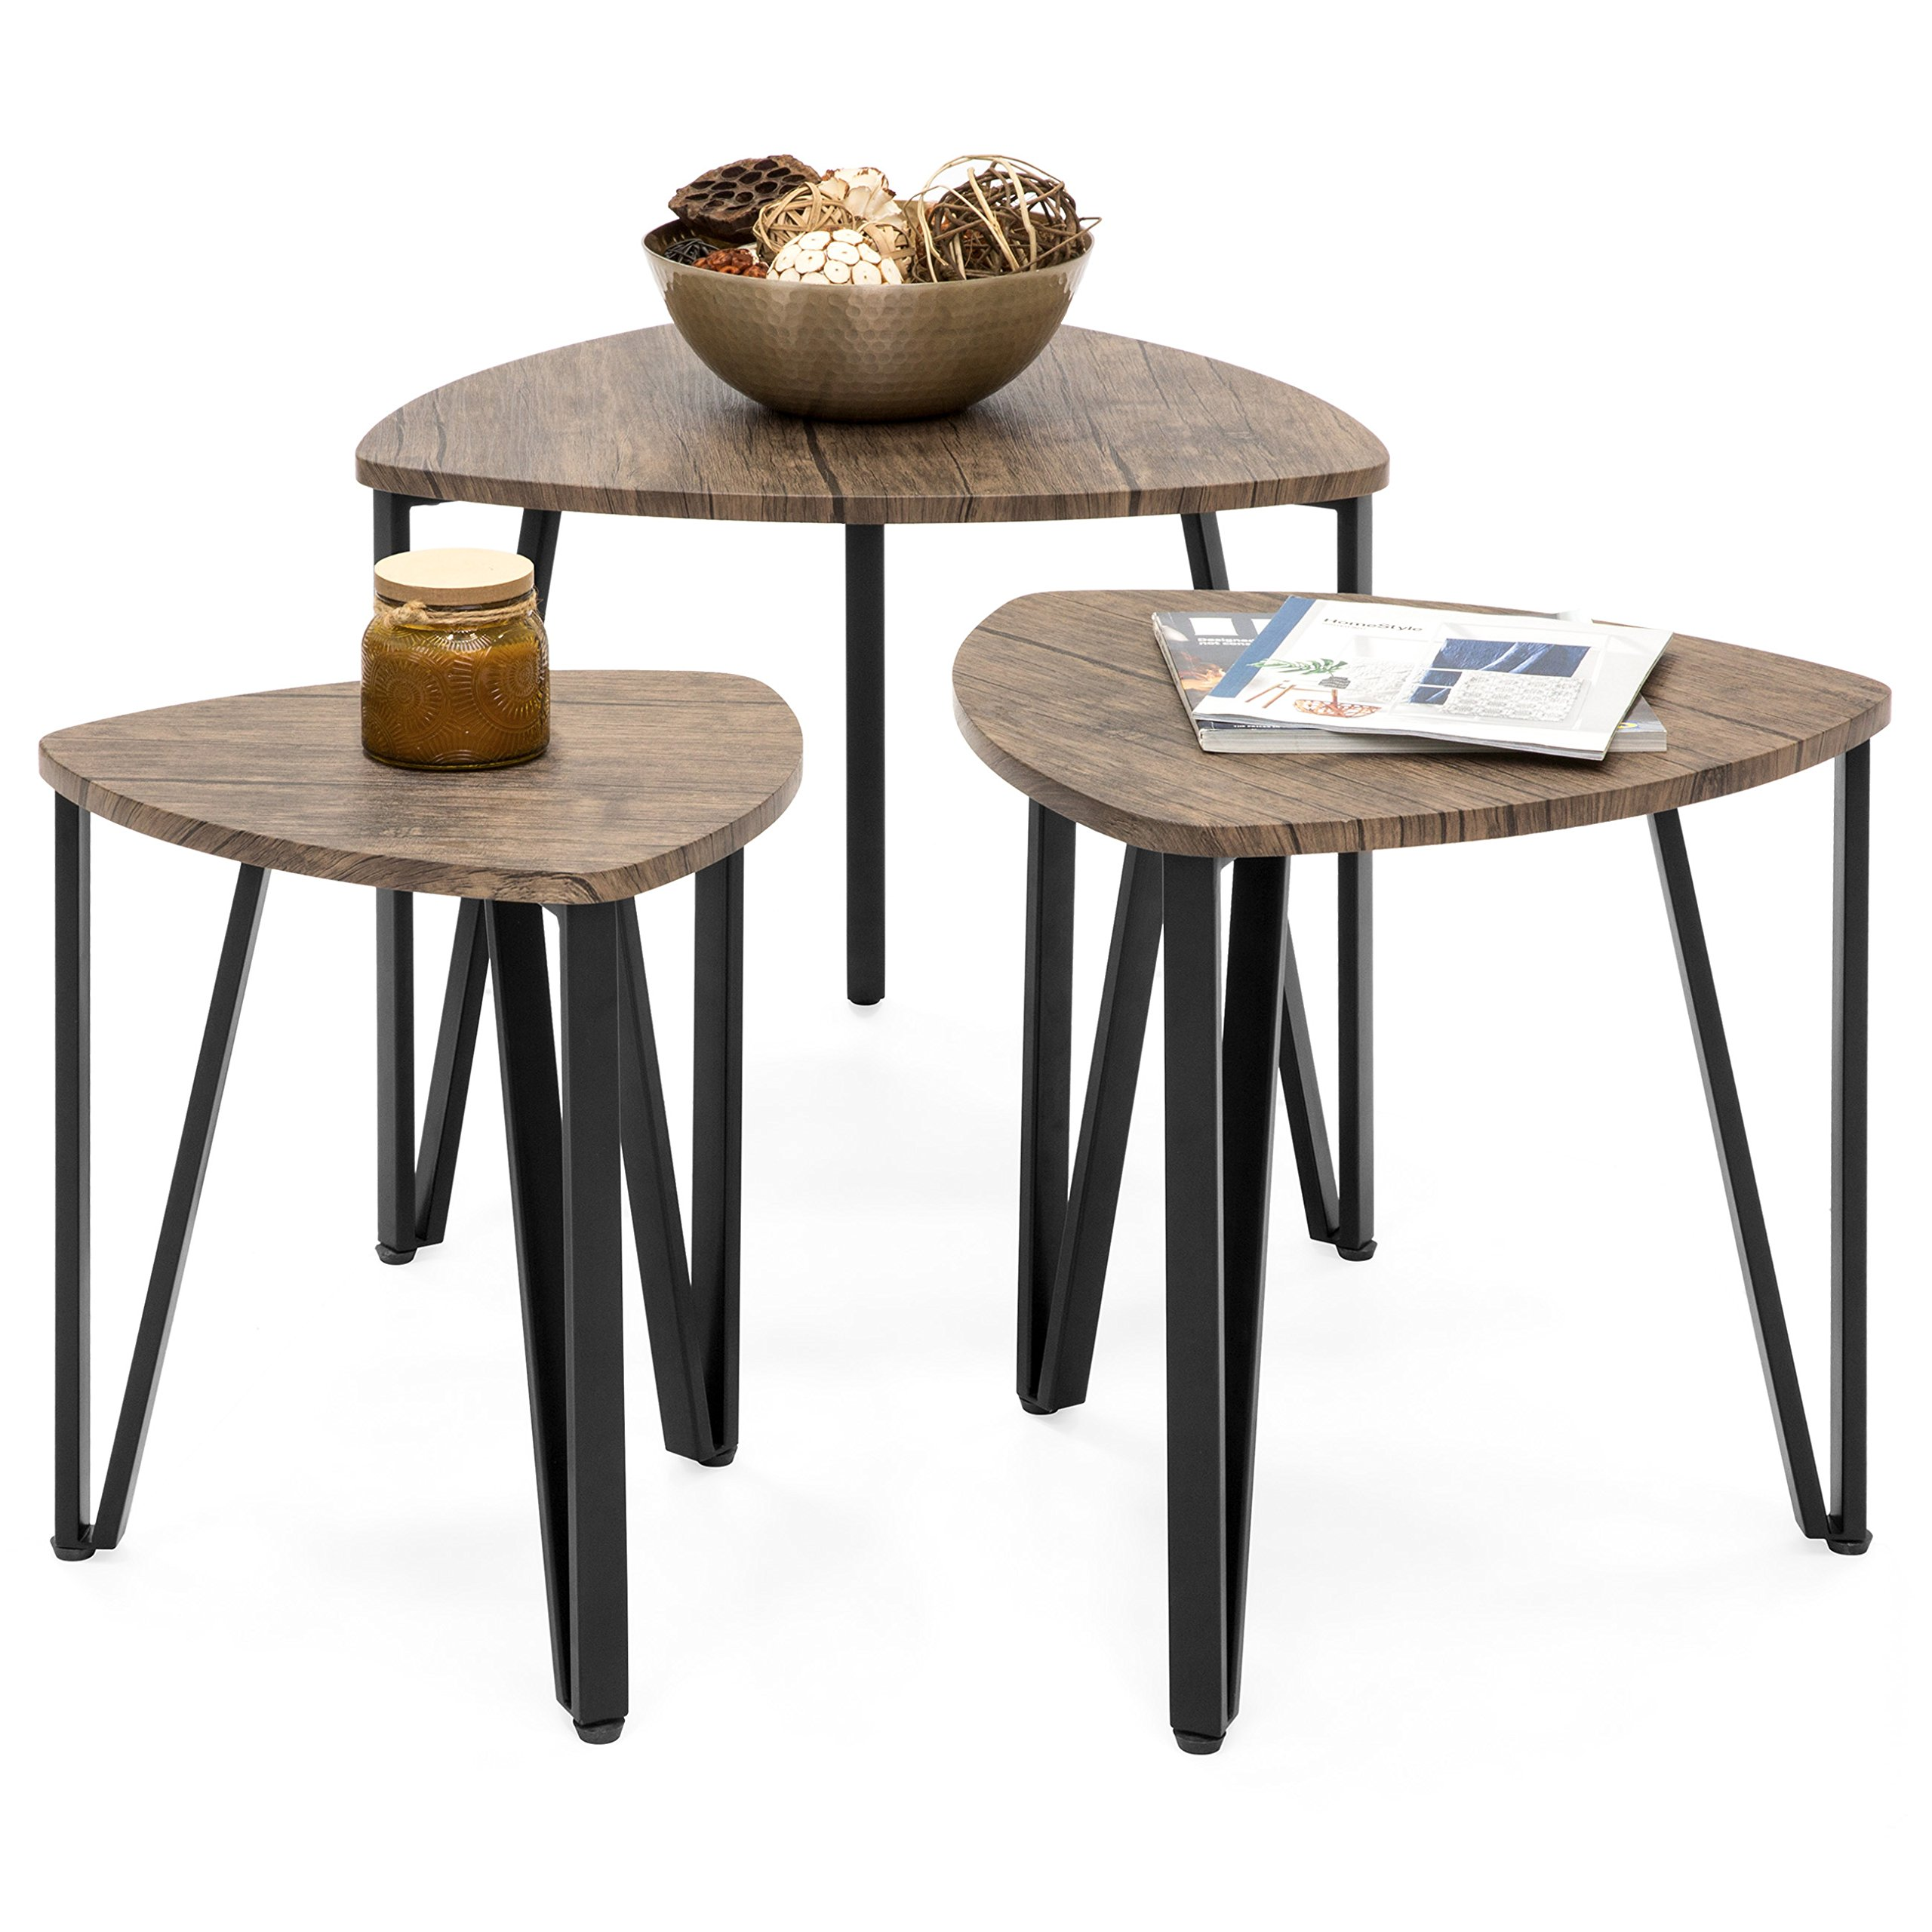 Best Choice Products Set of 3 Modern Leisure Wood Nesting Coffee Side End Tables for Living Room, Office, Brown by Best Choice Products